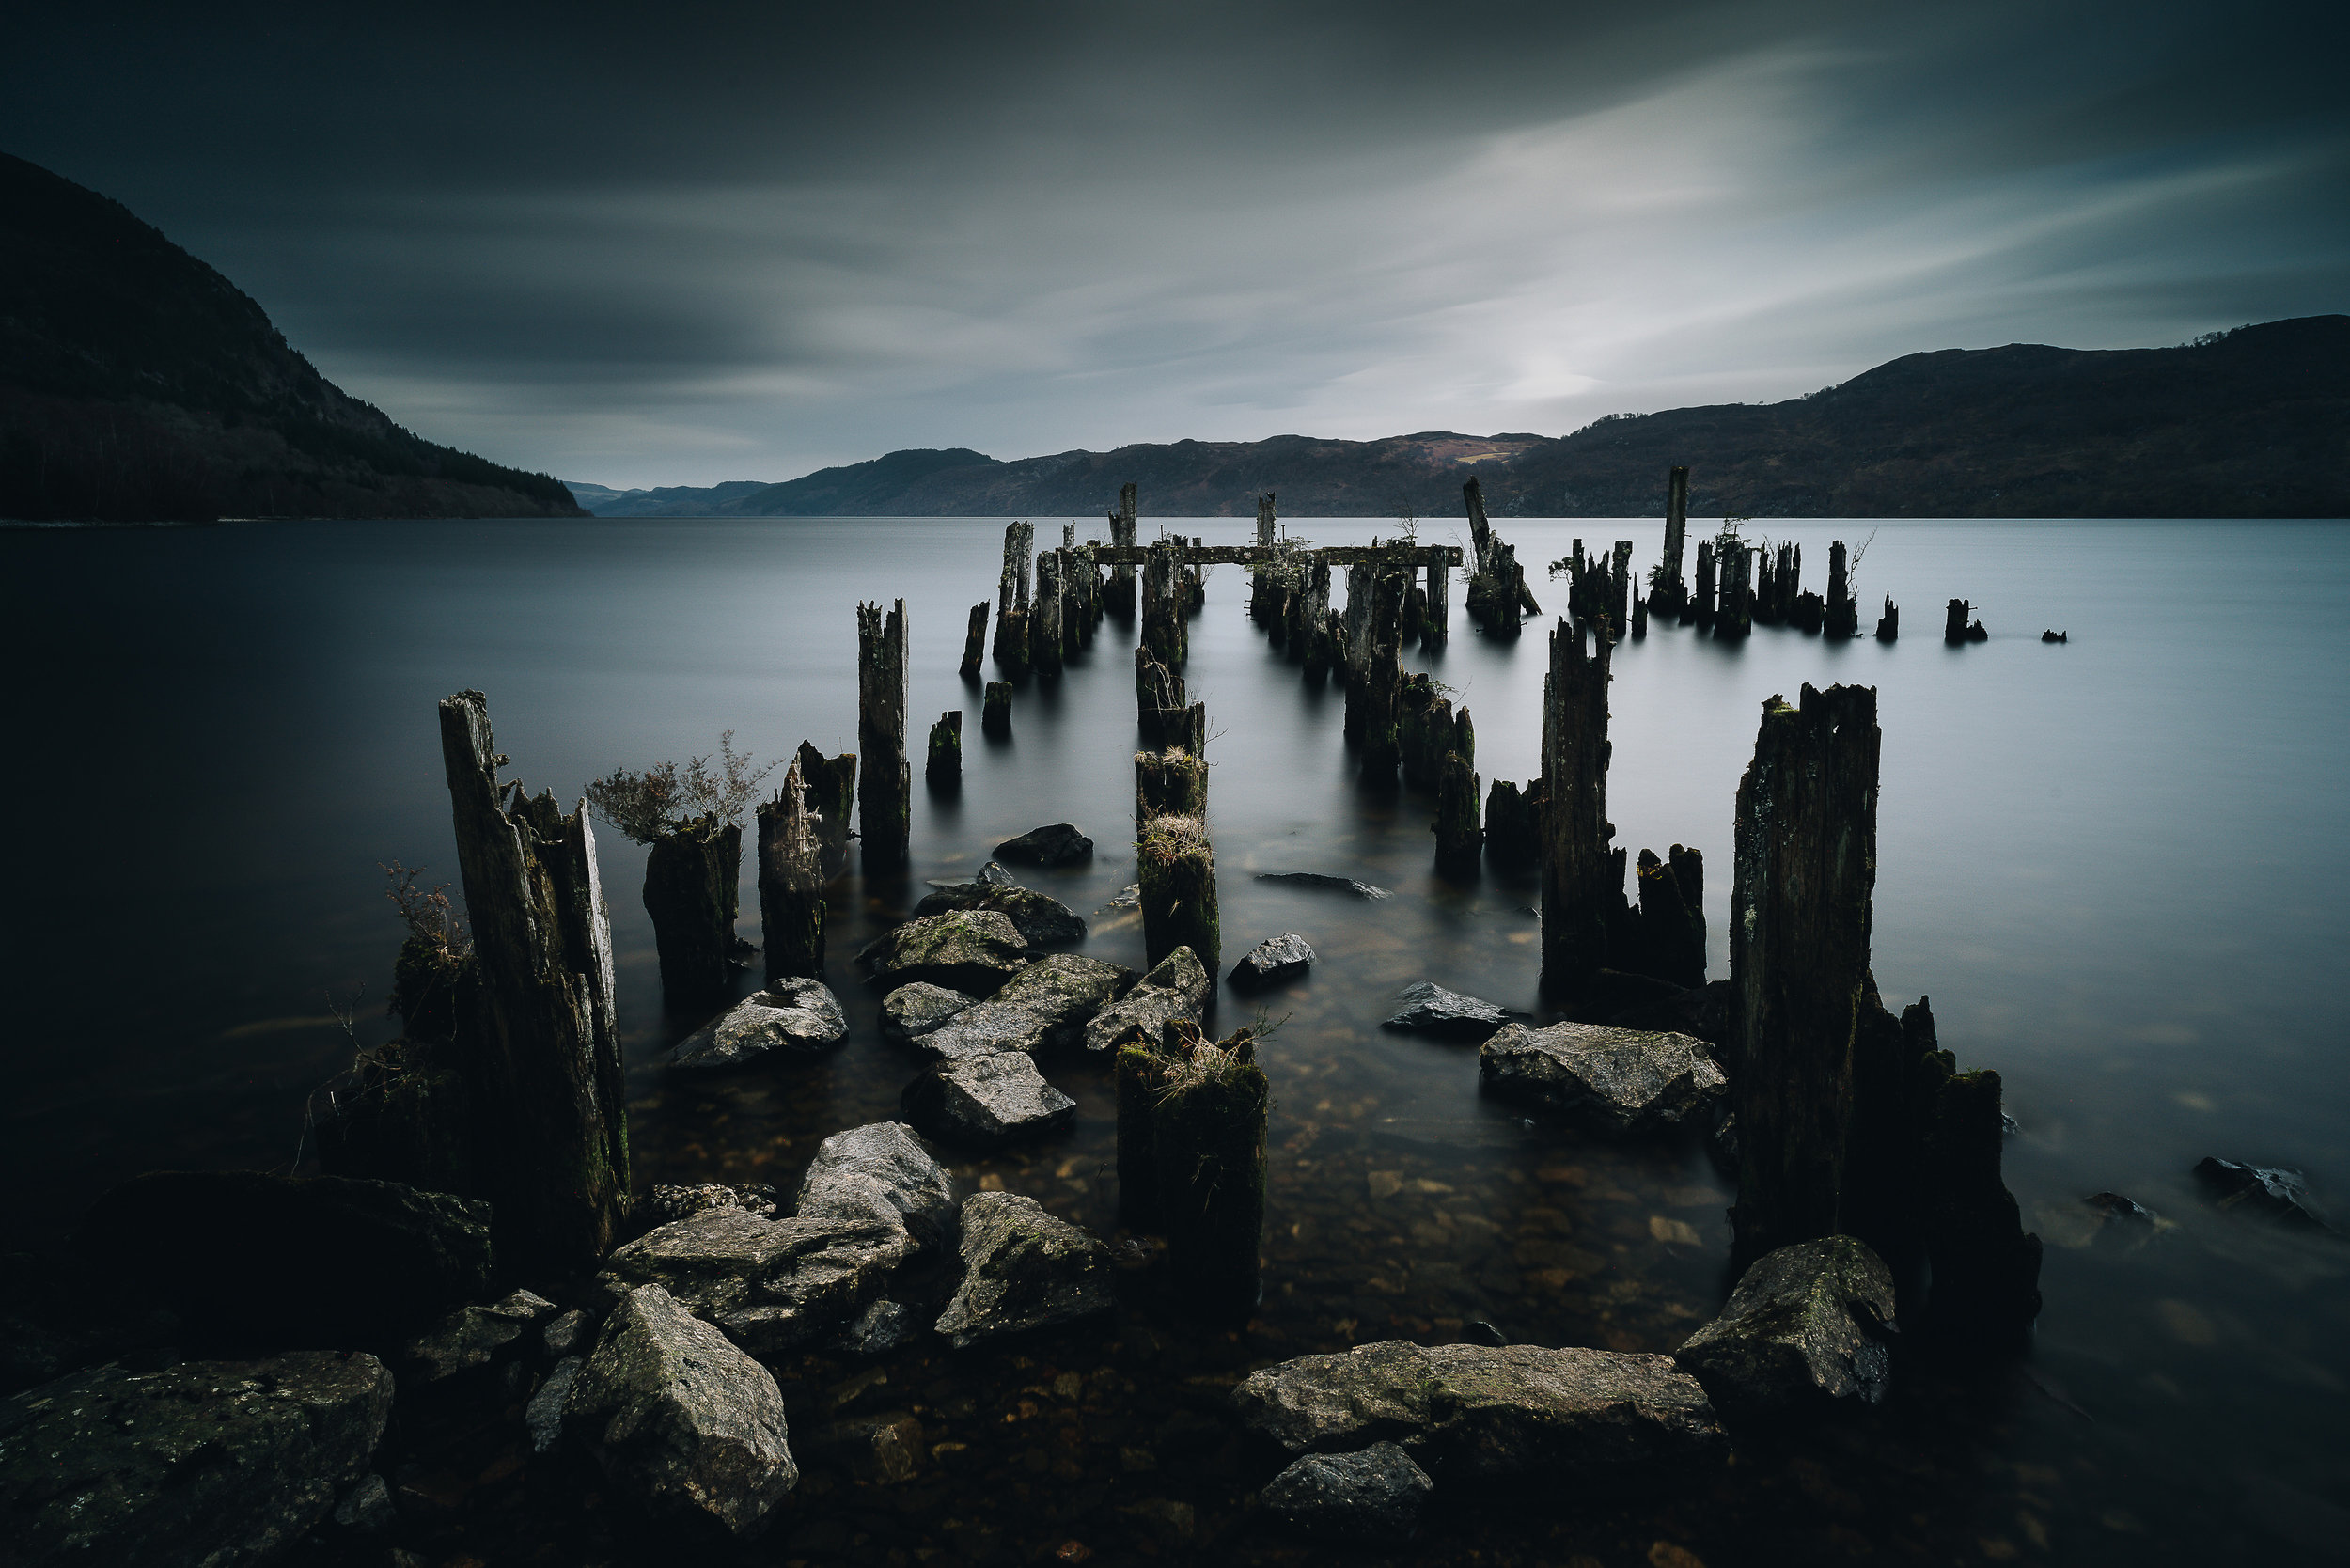 A ruined jetty in Loch Ness